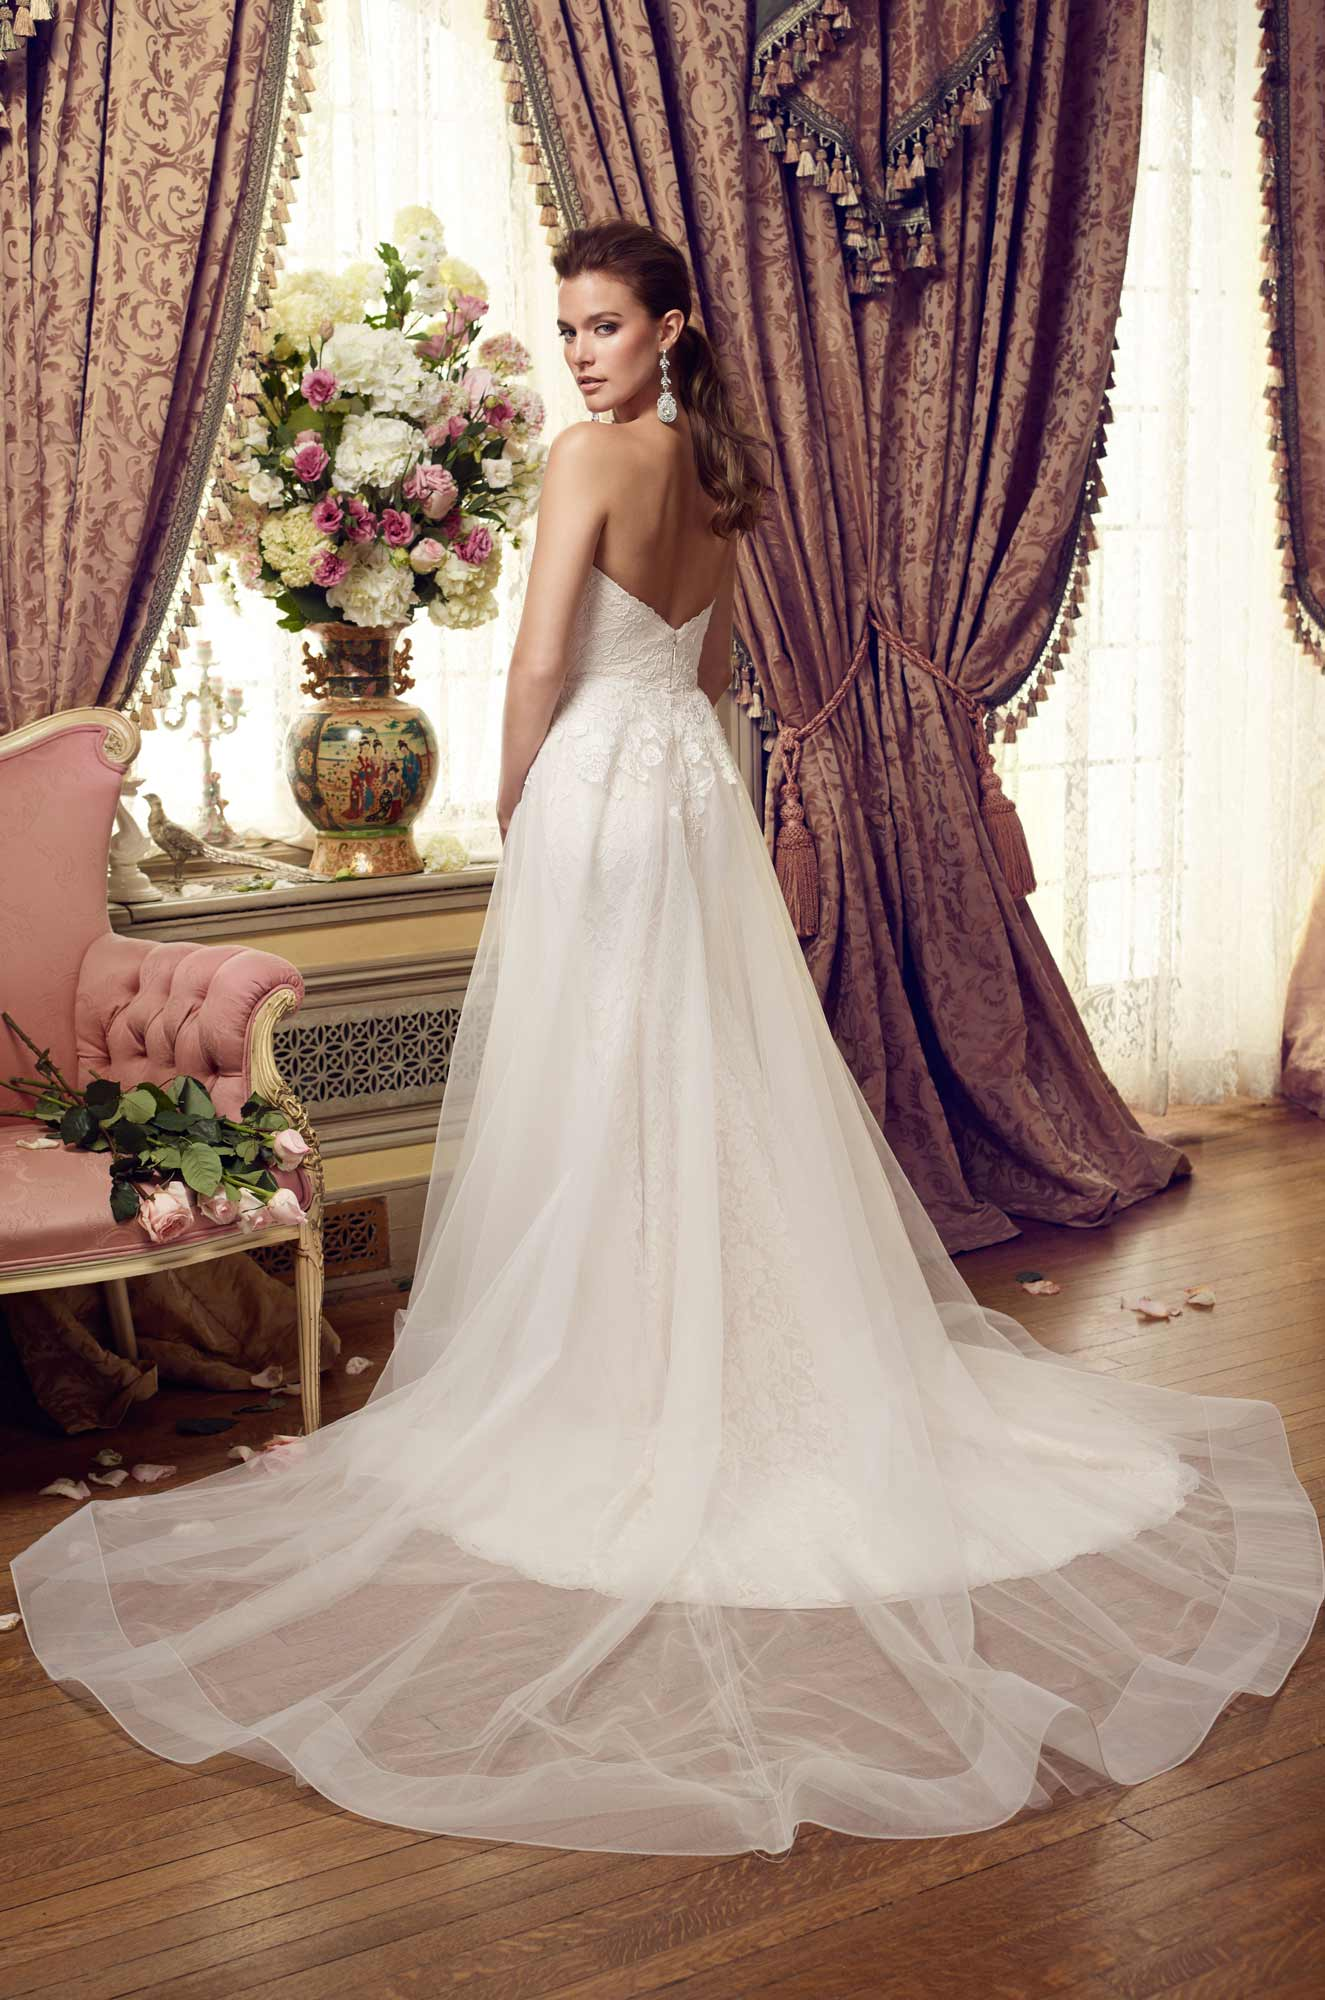 Ethereal Skirt Wedding Dress – Style #2152 | Mikaella Bridal